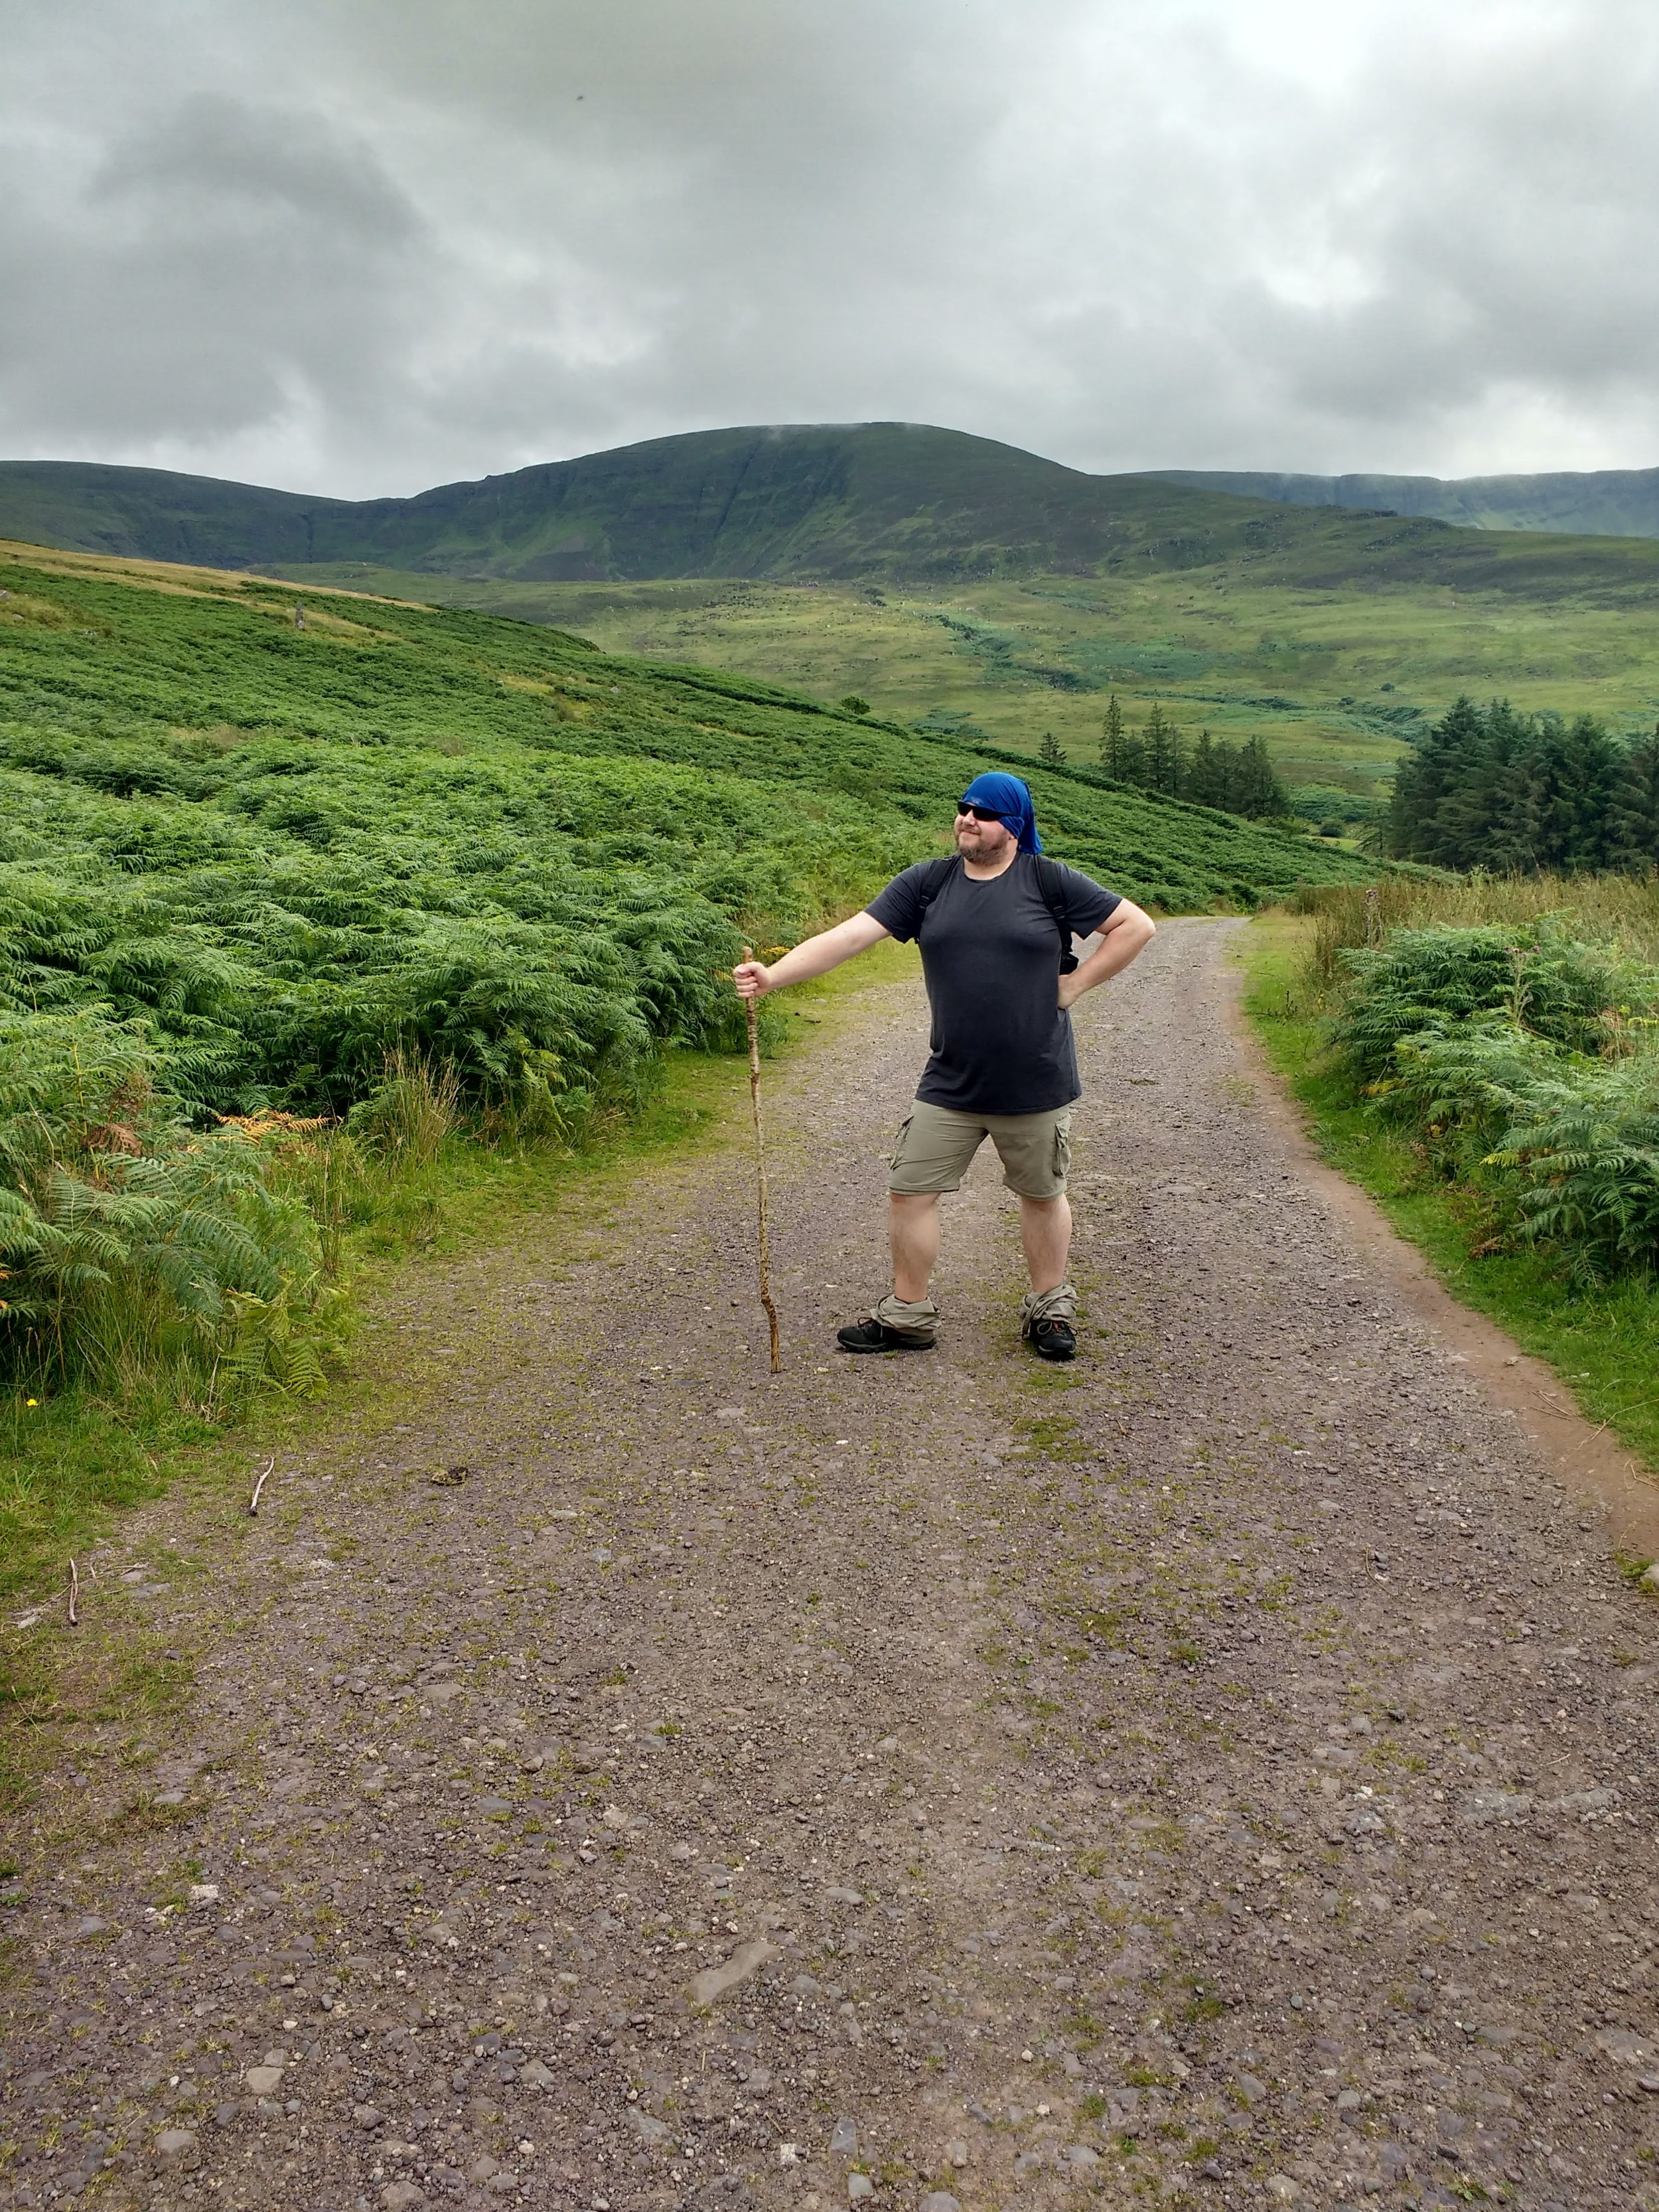 Off season adventure and beauty in the Comeragh Mountains, Ireland